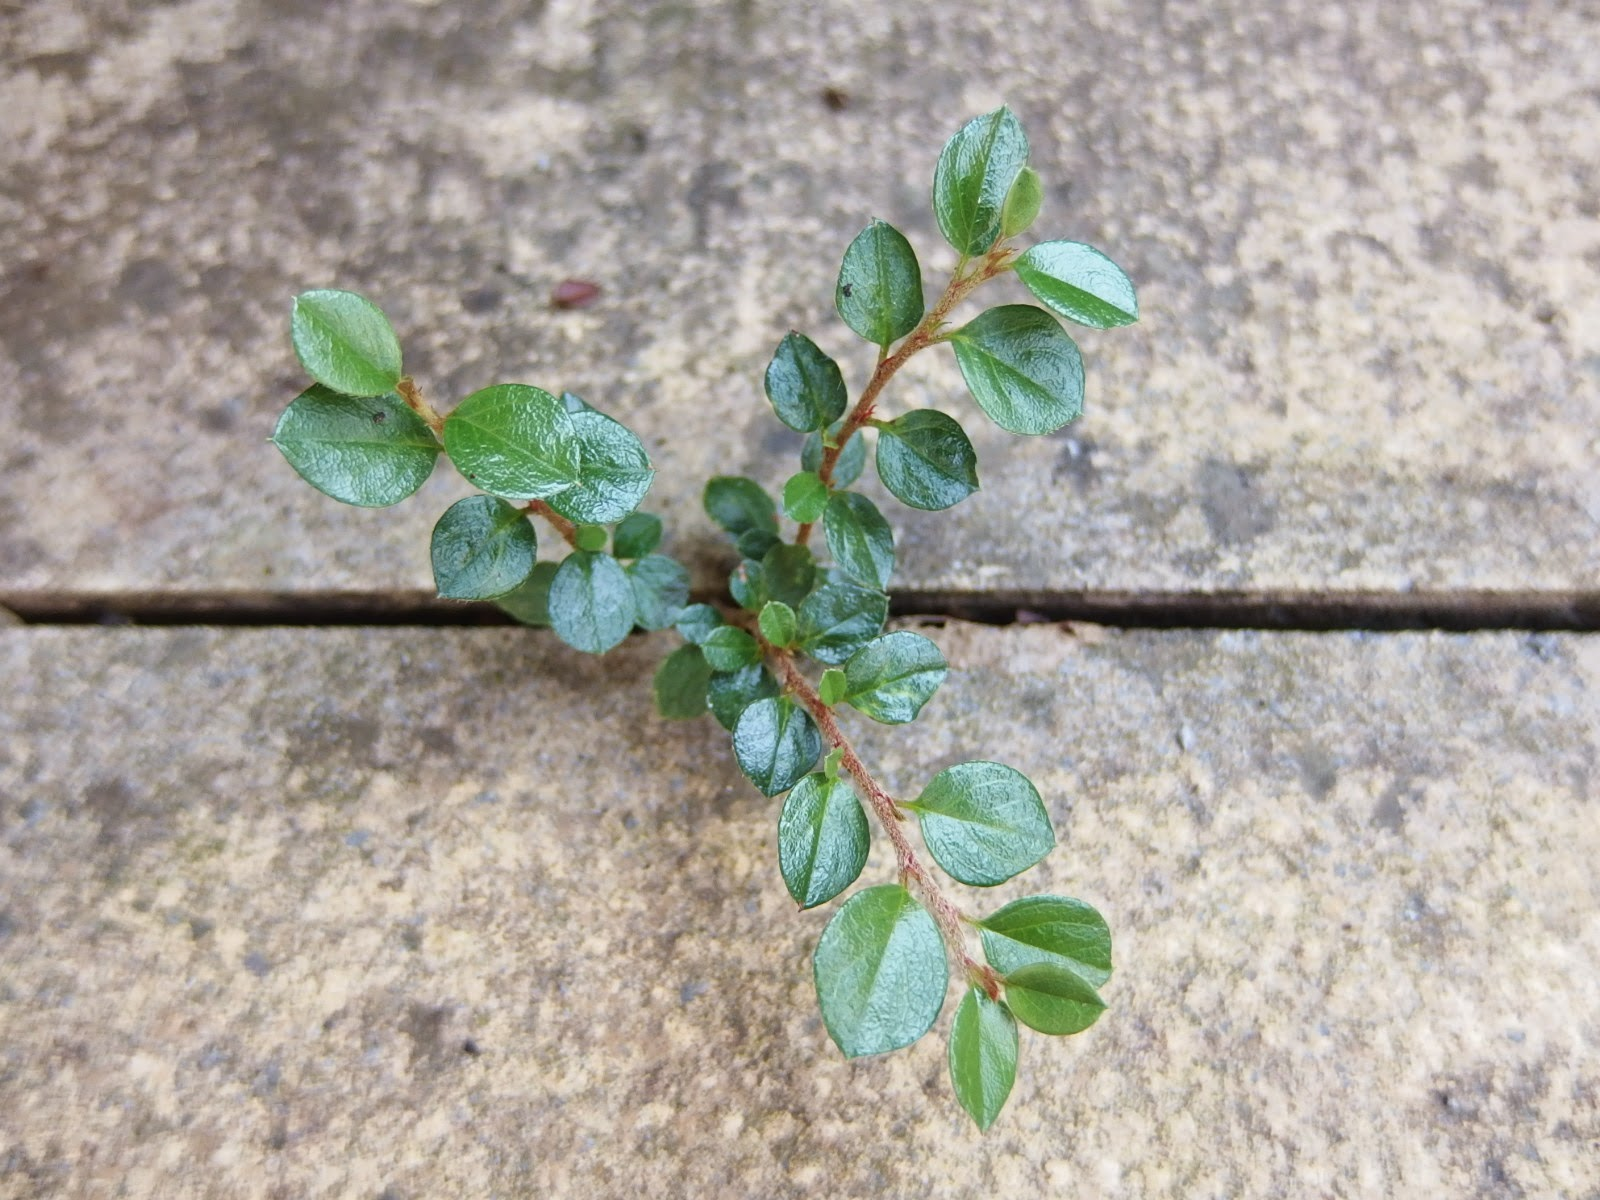 Picture of a Cotoneaster seedling growing in the tiny crack between 2 paving stones